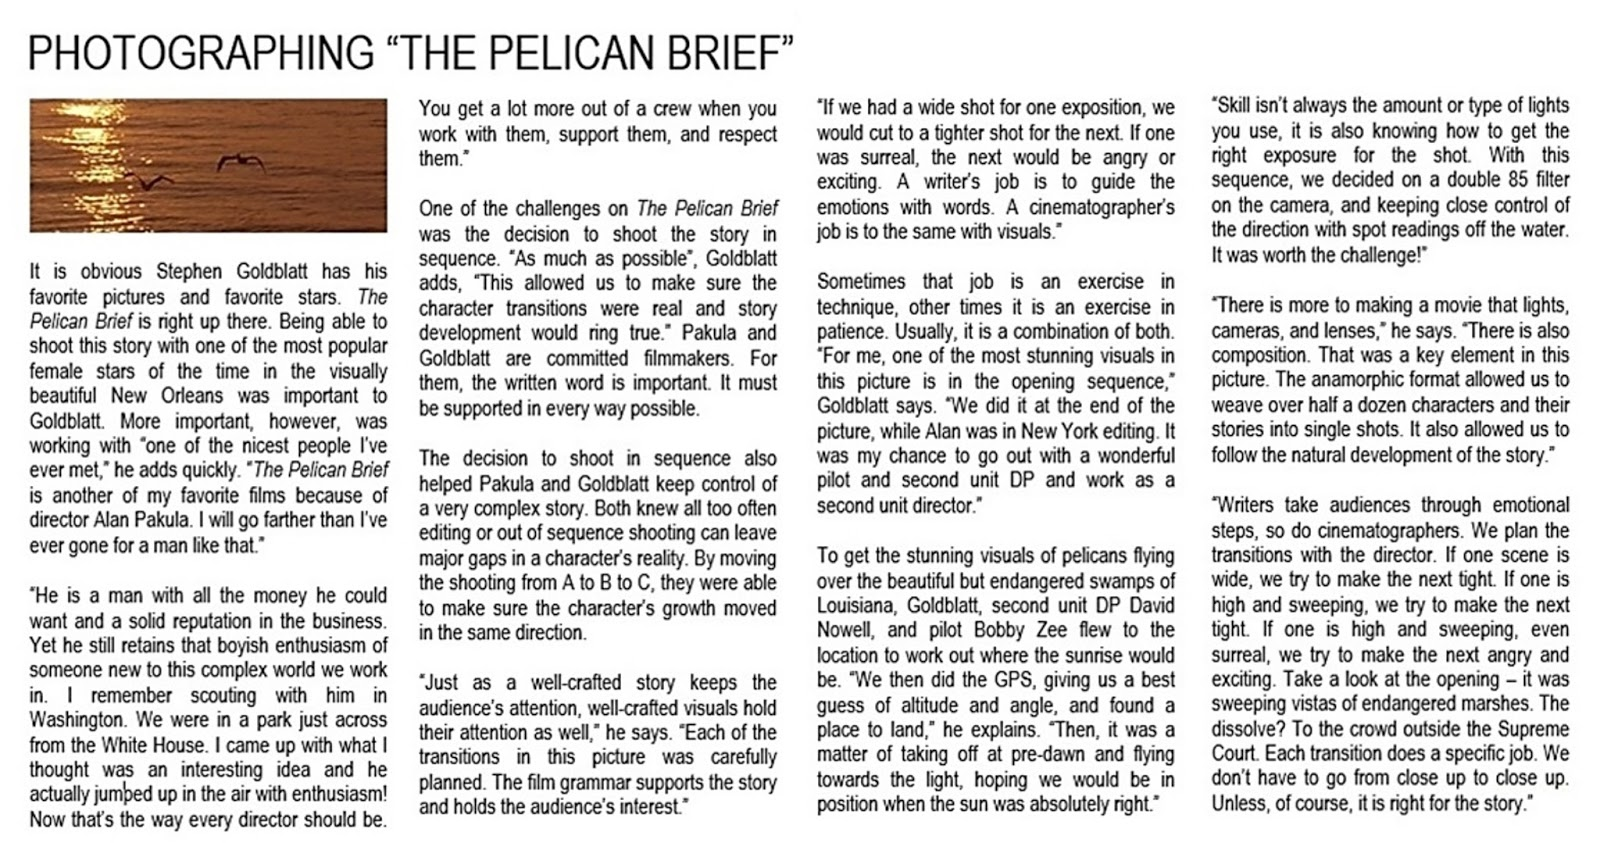 pelican brief essays Opening scenes in three films: easy rider, the french lieutenant's woman and the pelican brief (1969, december 31) in megaessayscom retrieved 02:08.